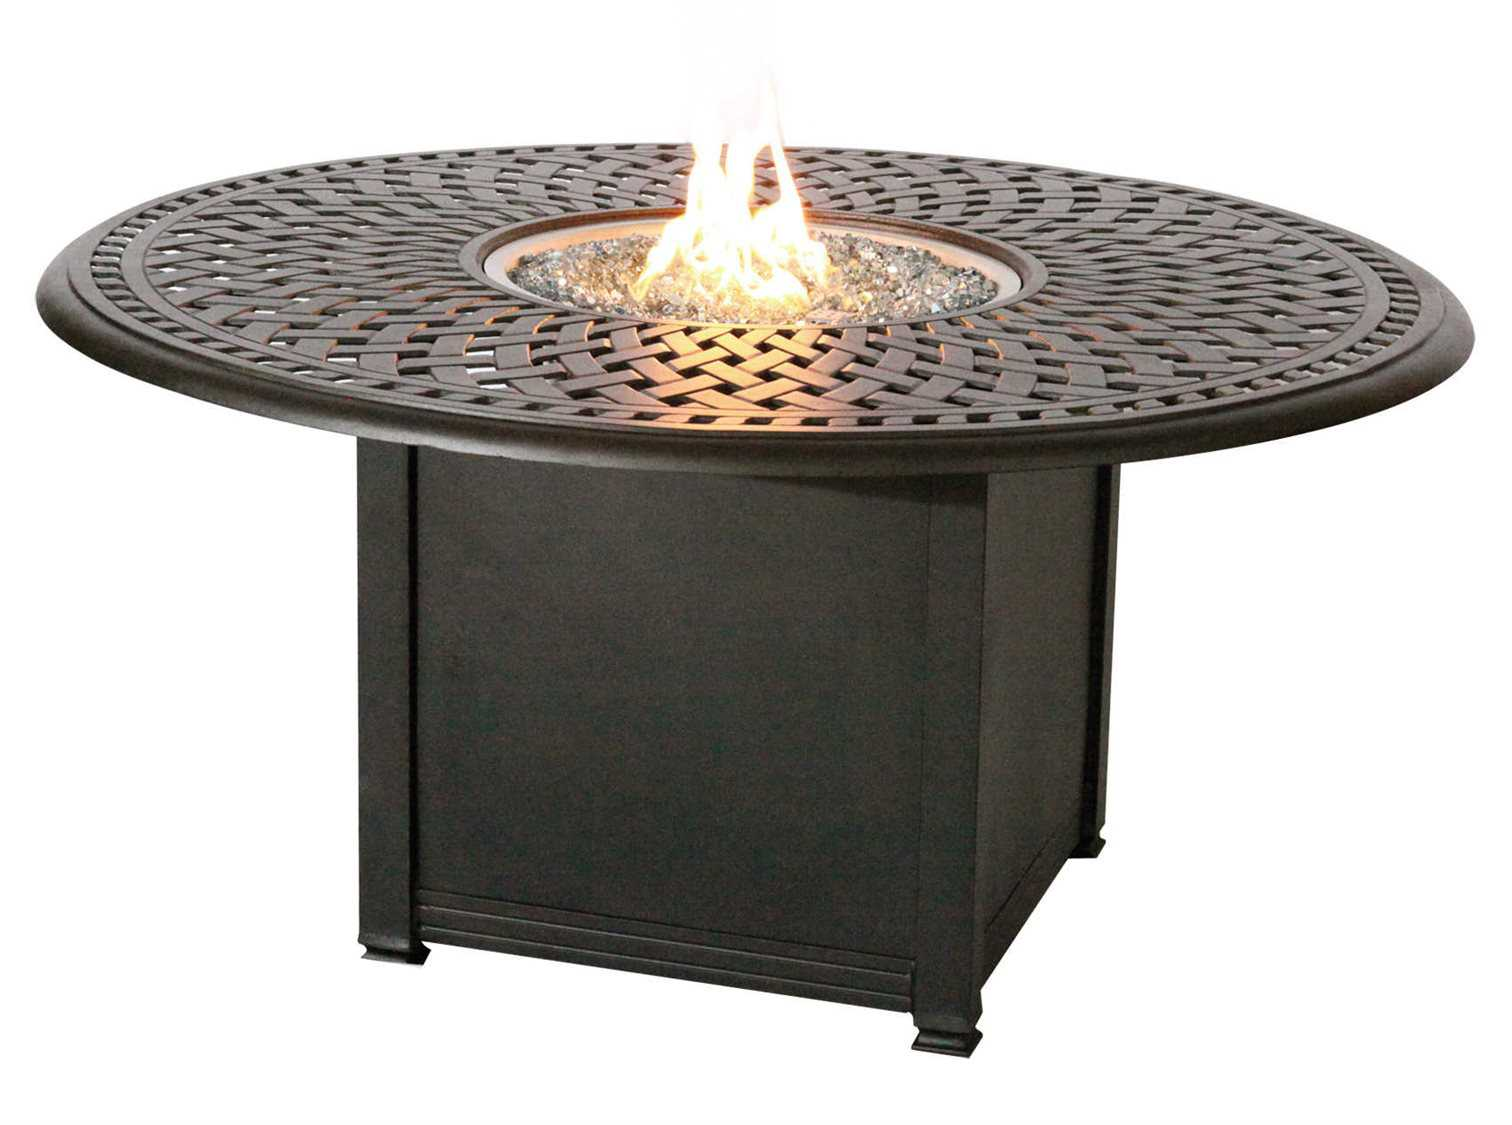 darlee outdoor living series 60 antique bronze cast aluminum 52 round propane fire pit chat table